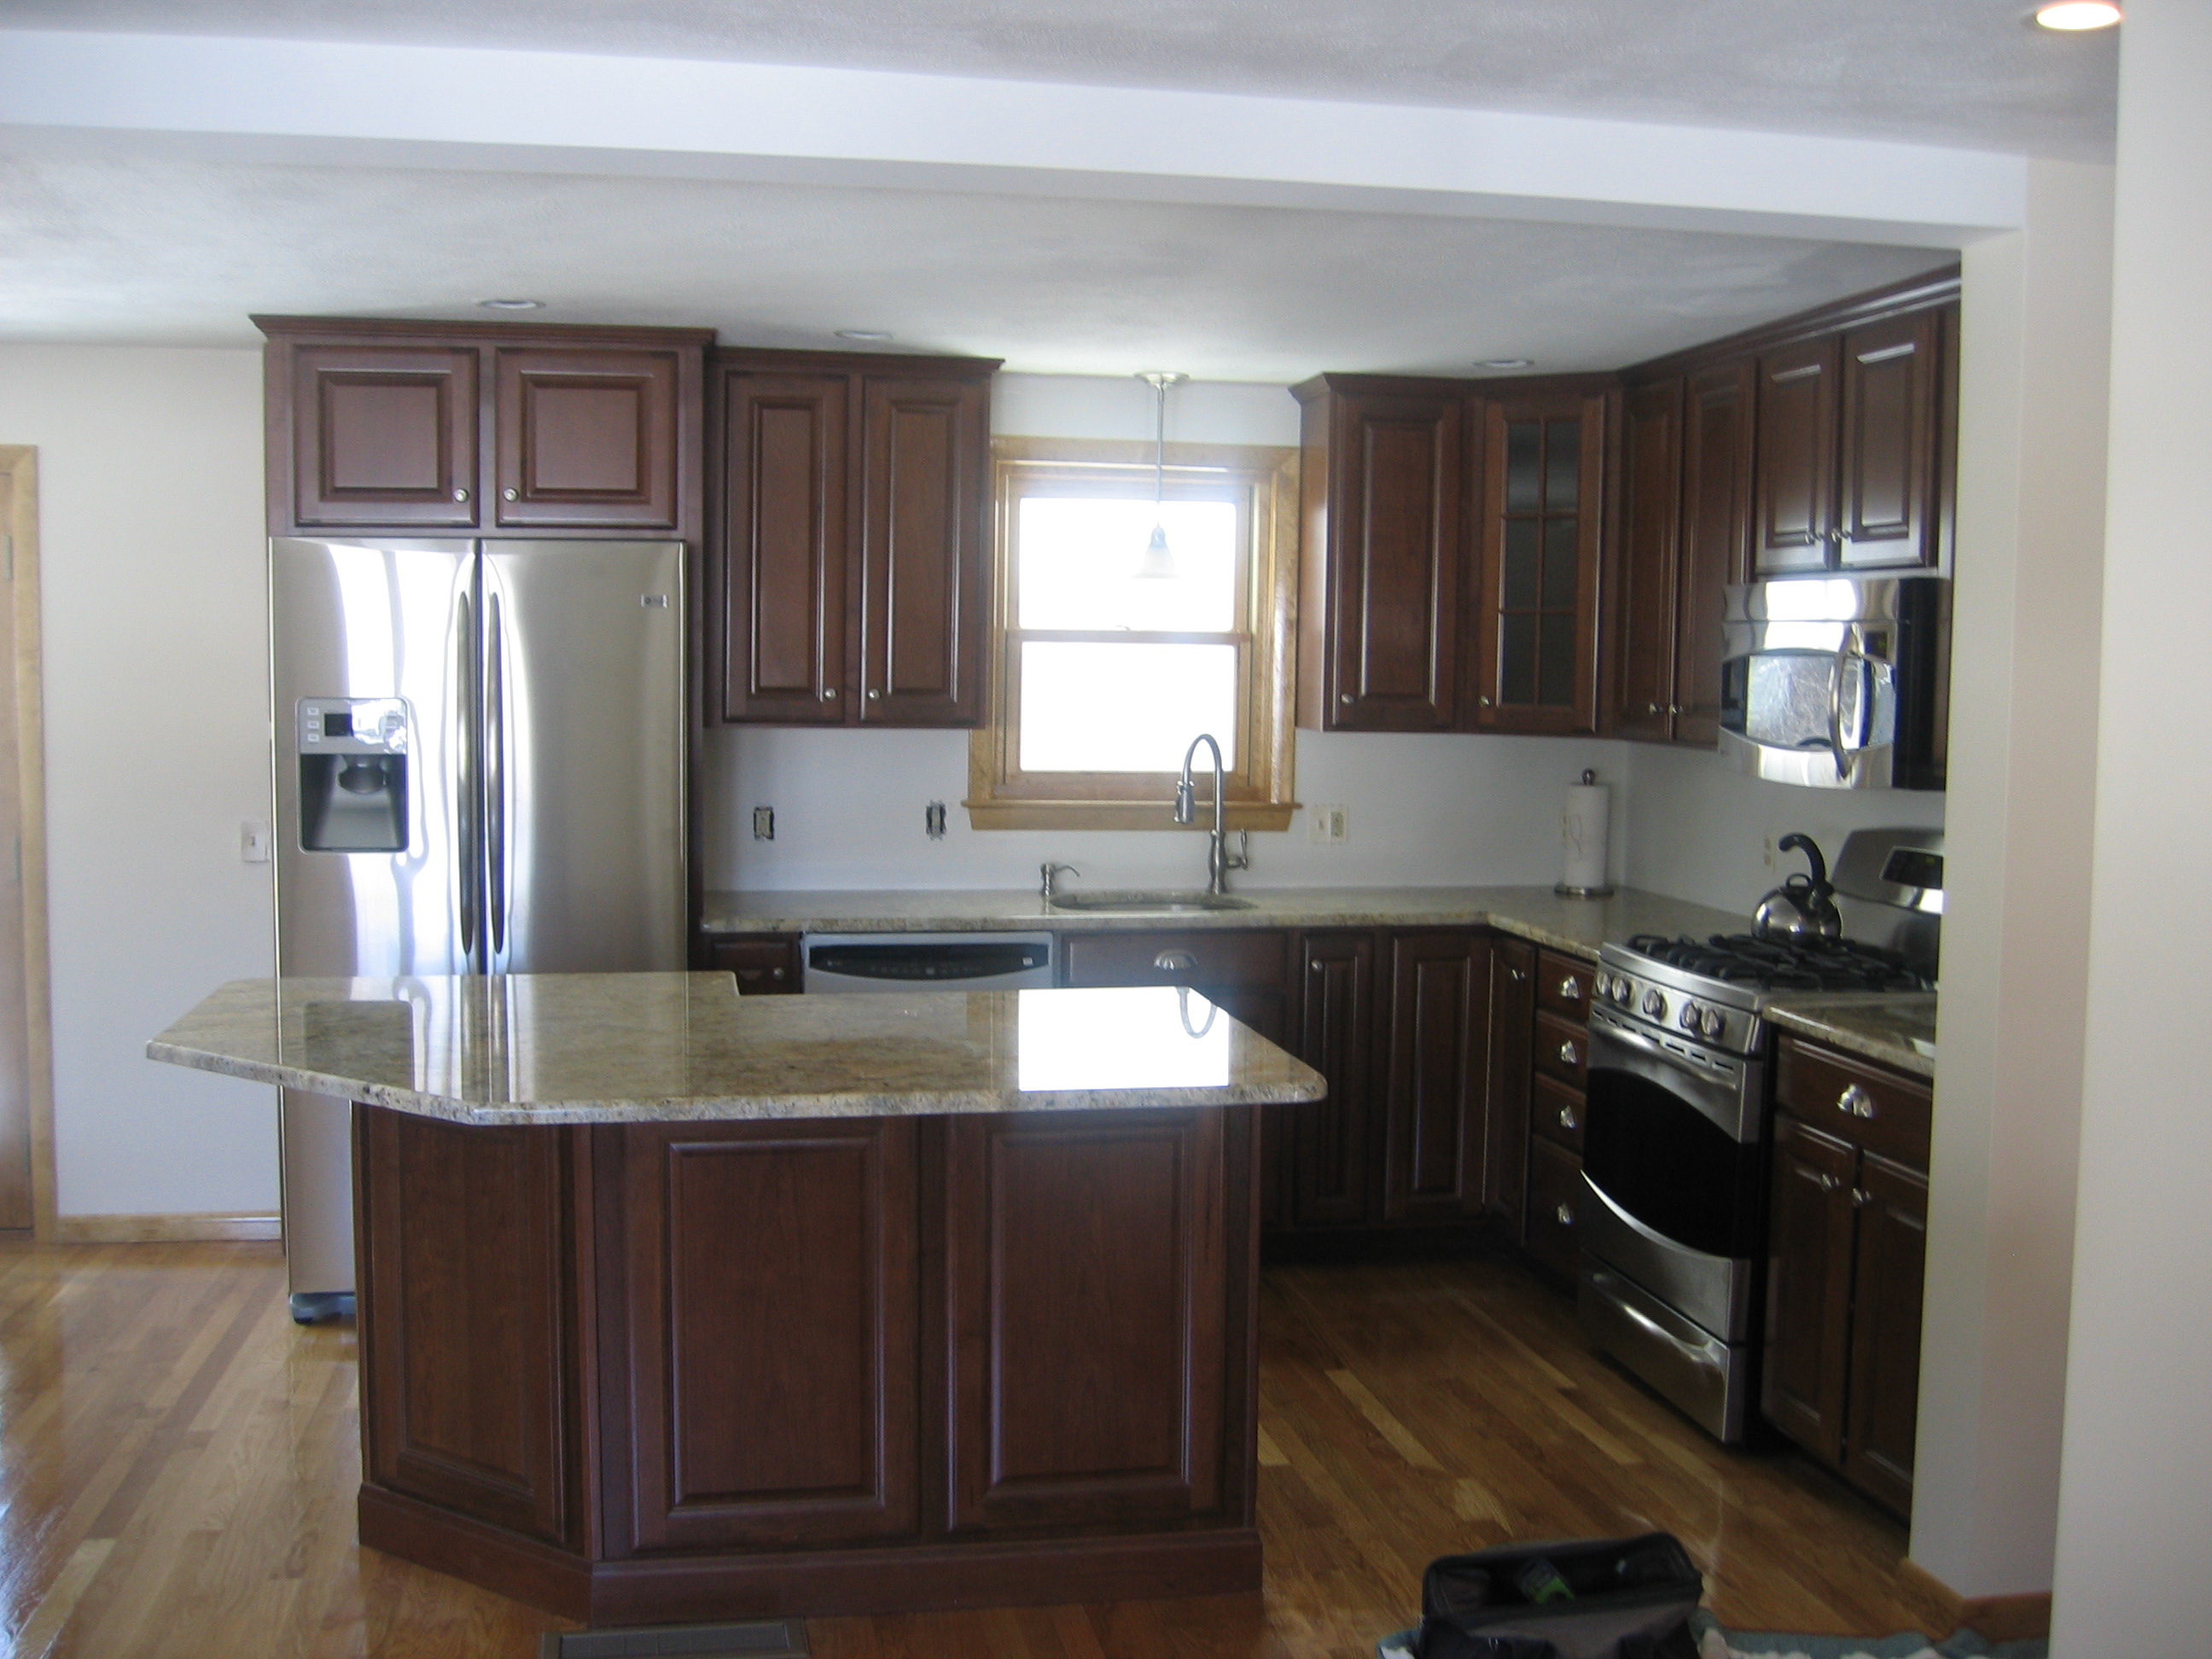 Amazing Kitchen Renovation 2592 x 1944 · 982 kB · jpeg